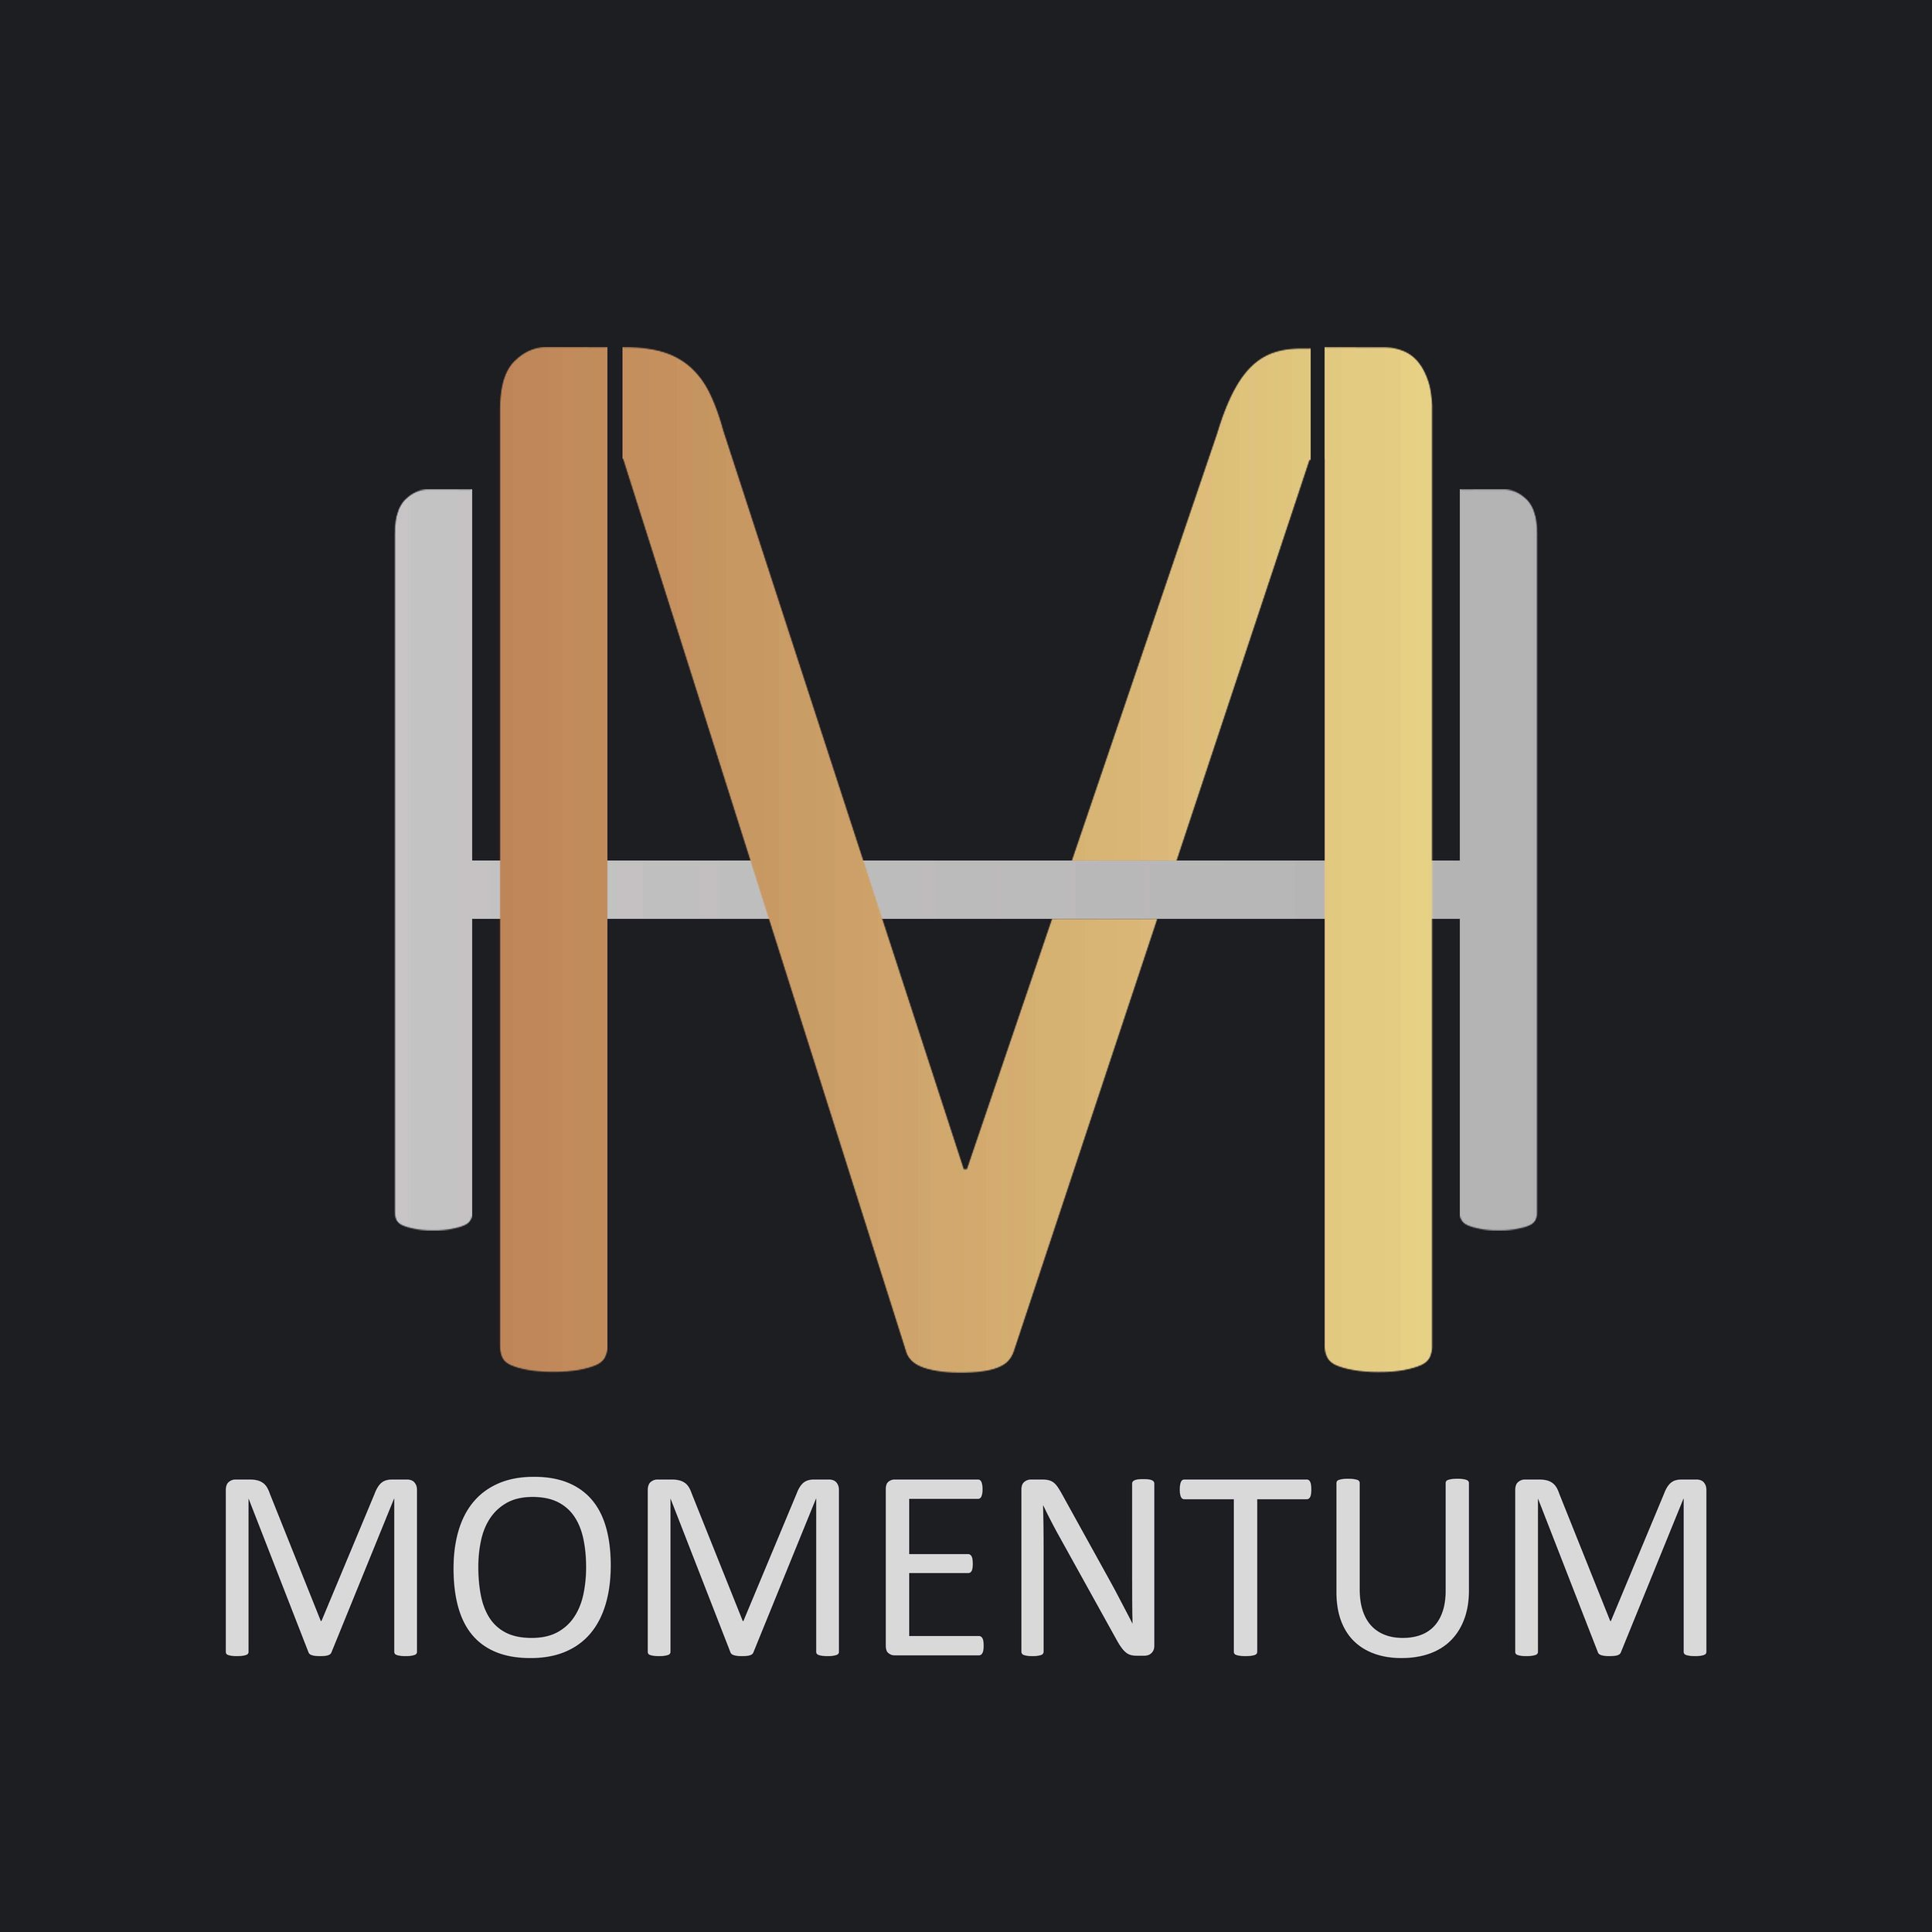 Copy of Copy of Momentum